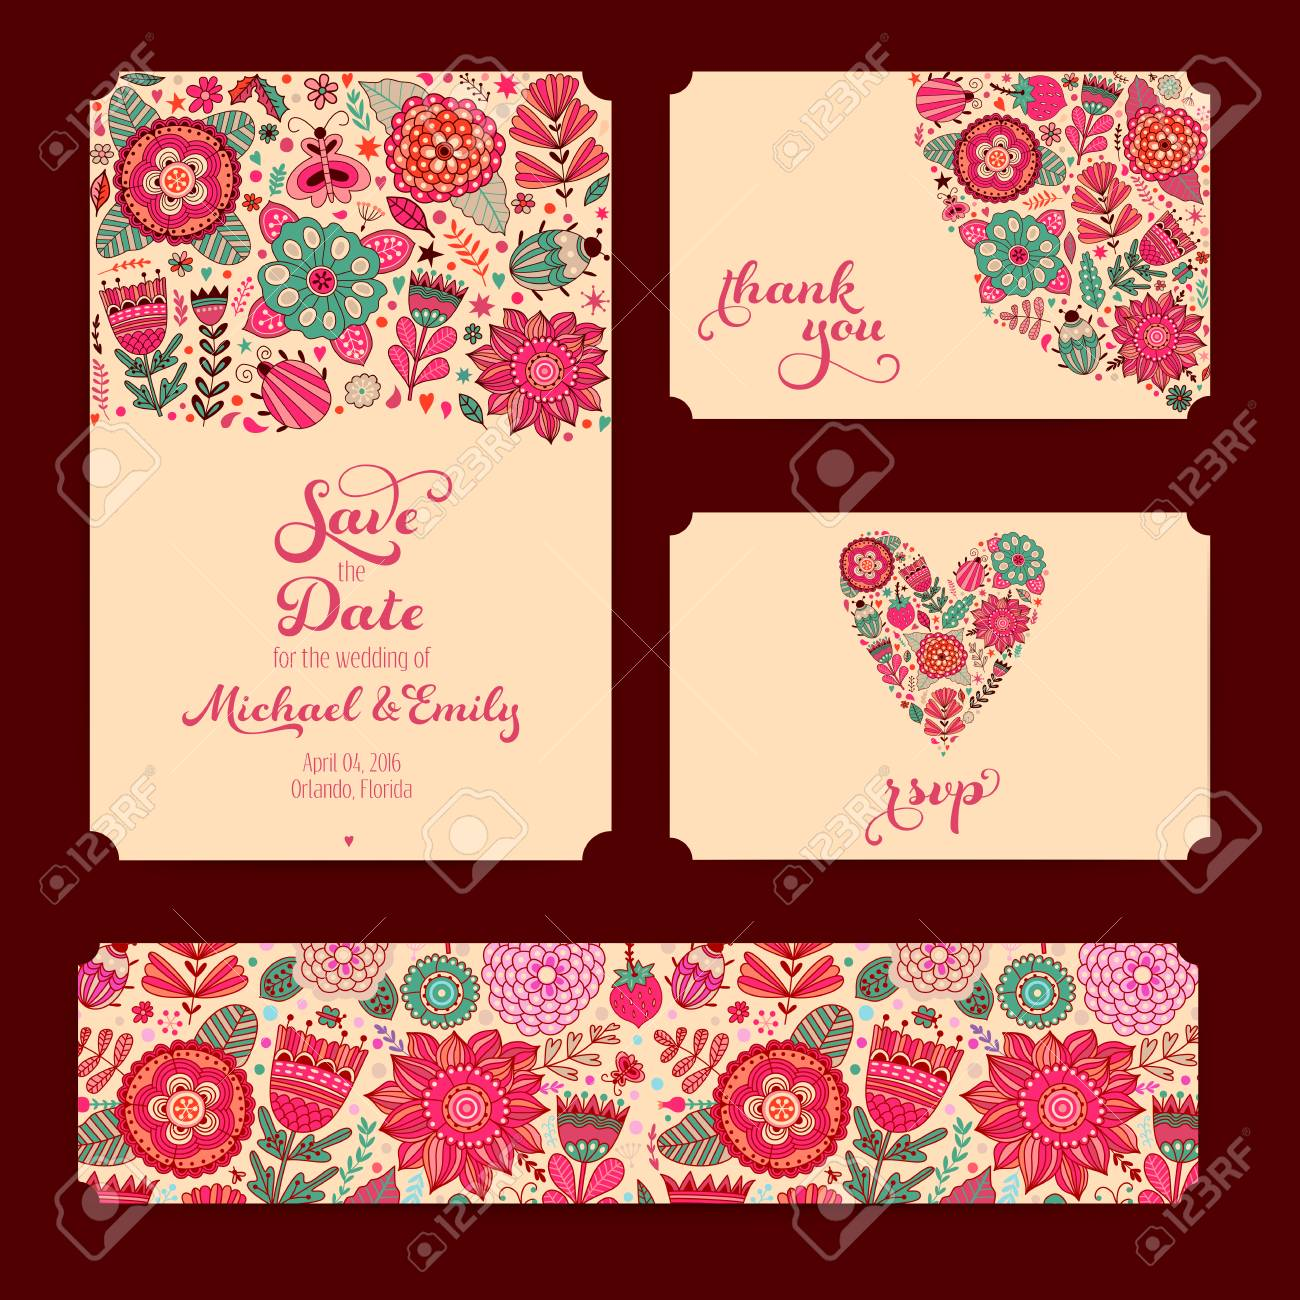 Wedding Invitation Template: Invitation, Envelope, Thank You.. Stock ...